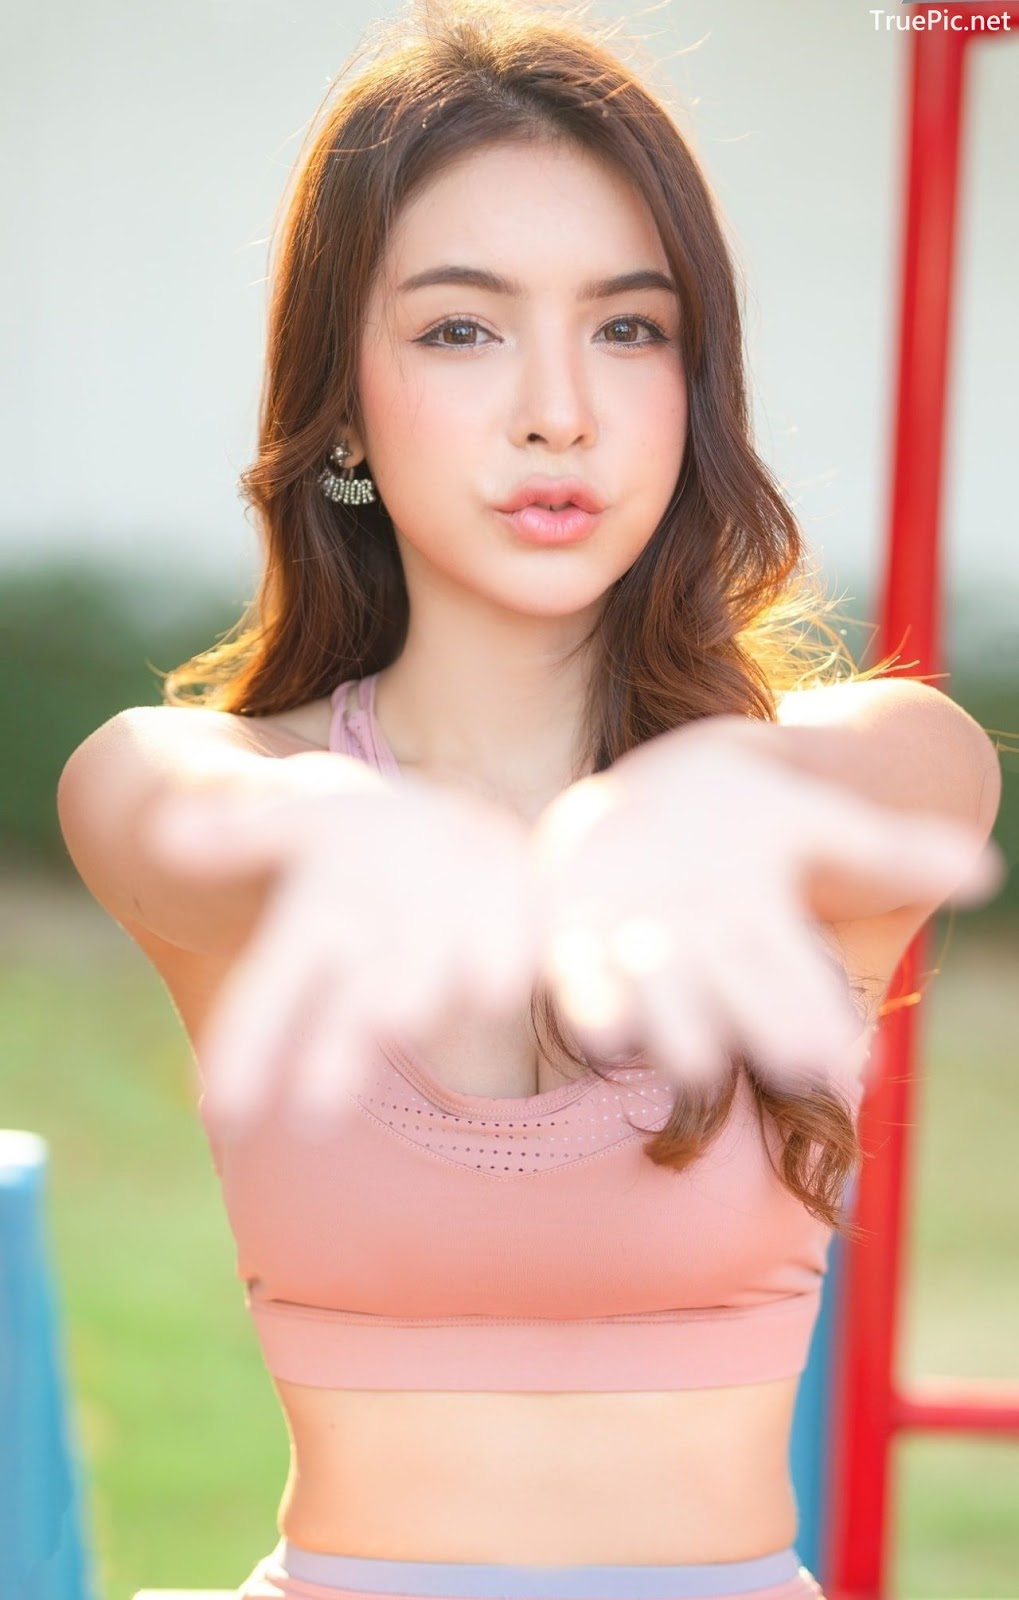 Image-Thailand-Beautiful-Model-Soithip-Palwongpaisal-Pink-Fitness-Girl-TruePic.net- Picture-10